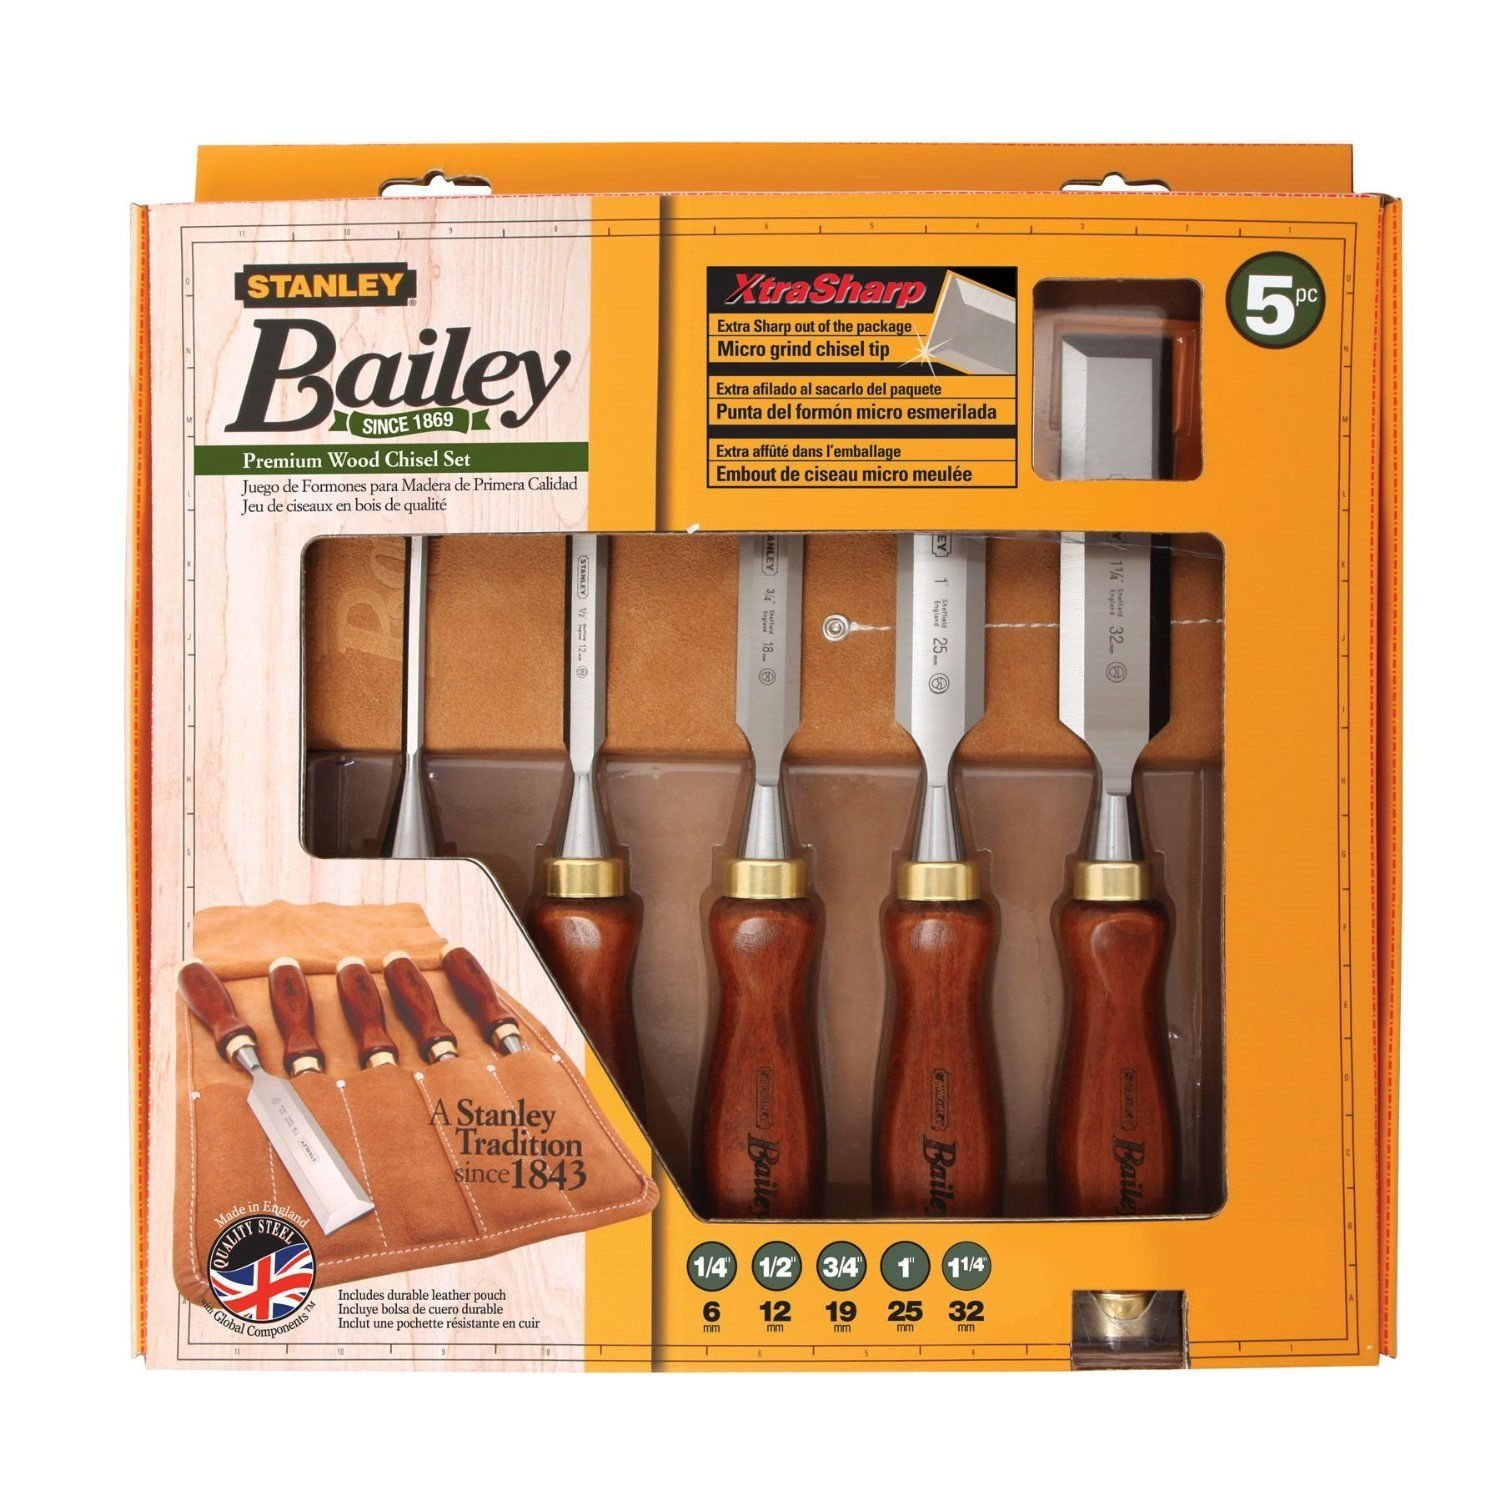 Stanley 16-401 Bailey Chisel Set Pack 5-Piece Sharp Woodwork Craft Carving ..#from-by#_bytopdeals, #UGEIO98152206579965 by Anihoslen (Image #2)